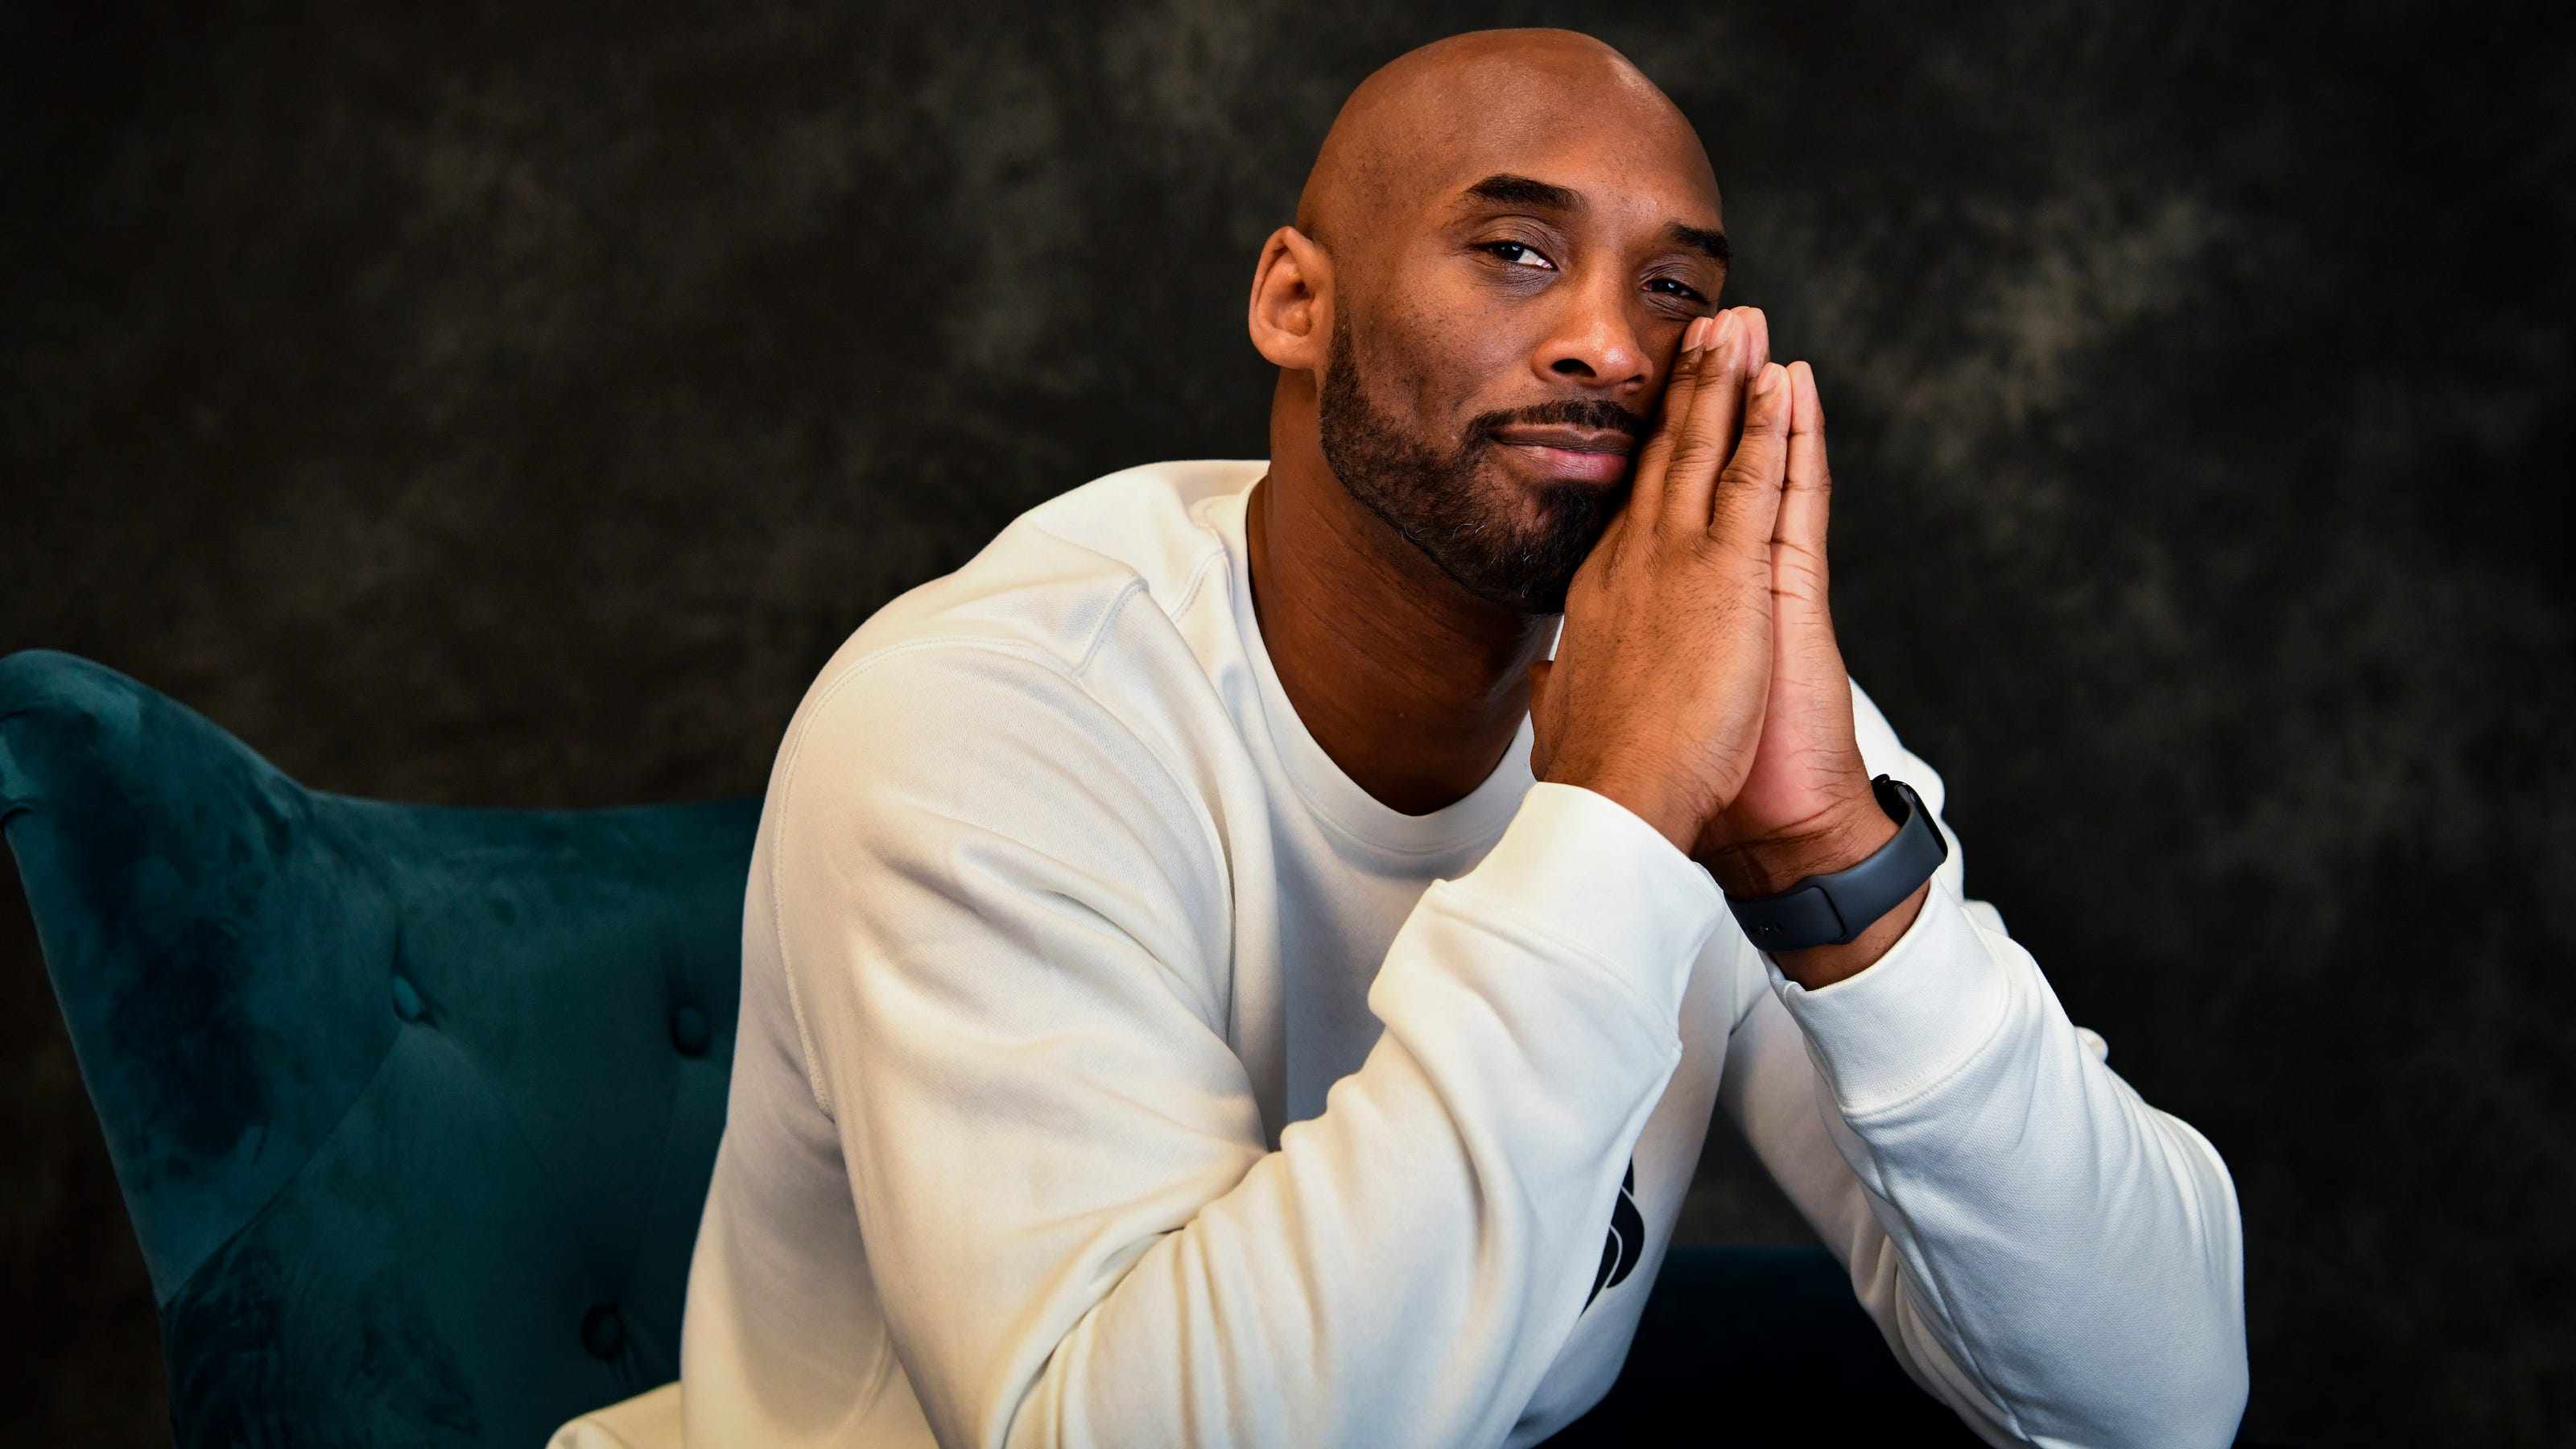 Life after basketball: Kobe Bryant's transition to Oscar, Emmy winner and AAU coach